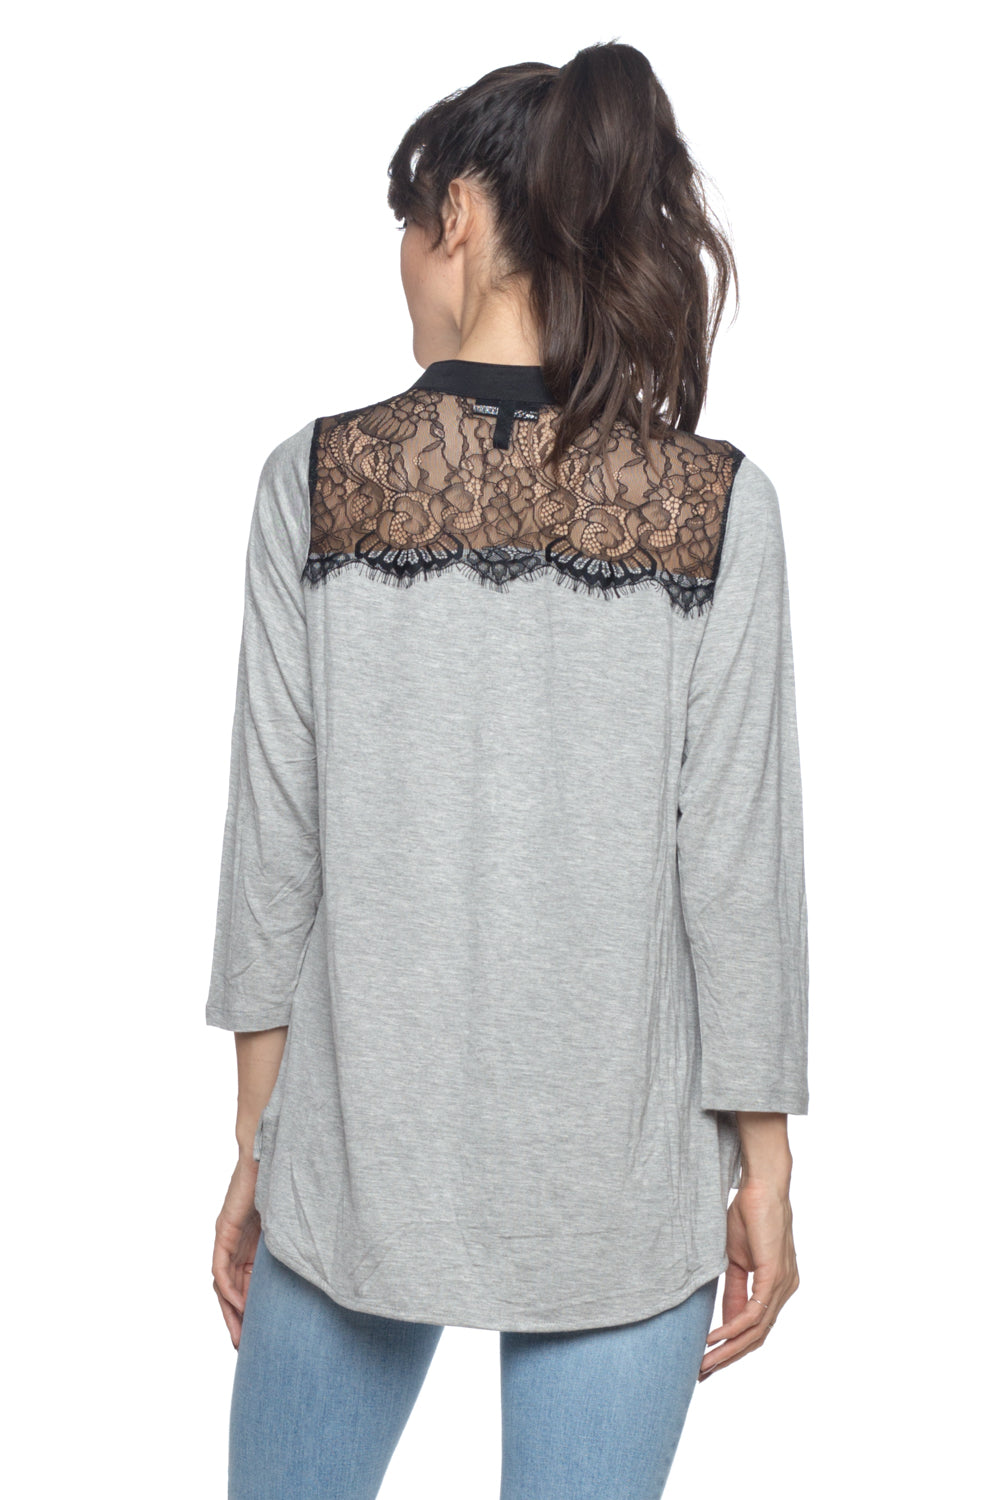 Women's 3/4 Sleeve Lace Top